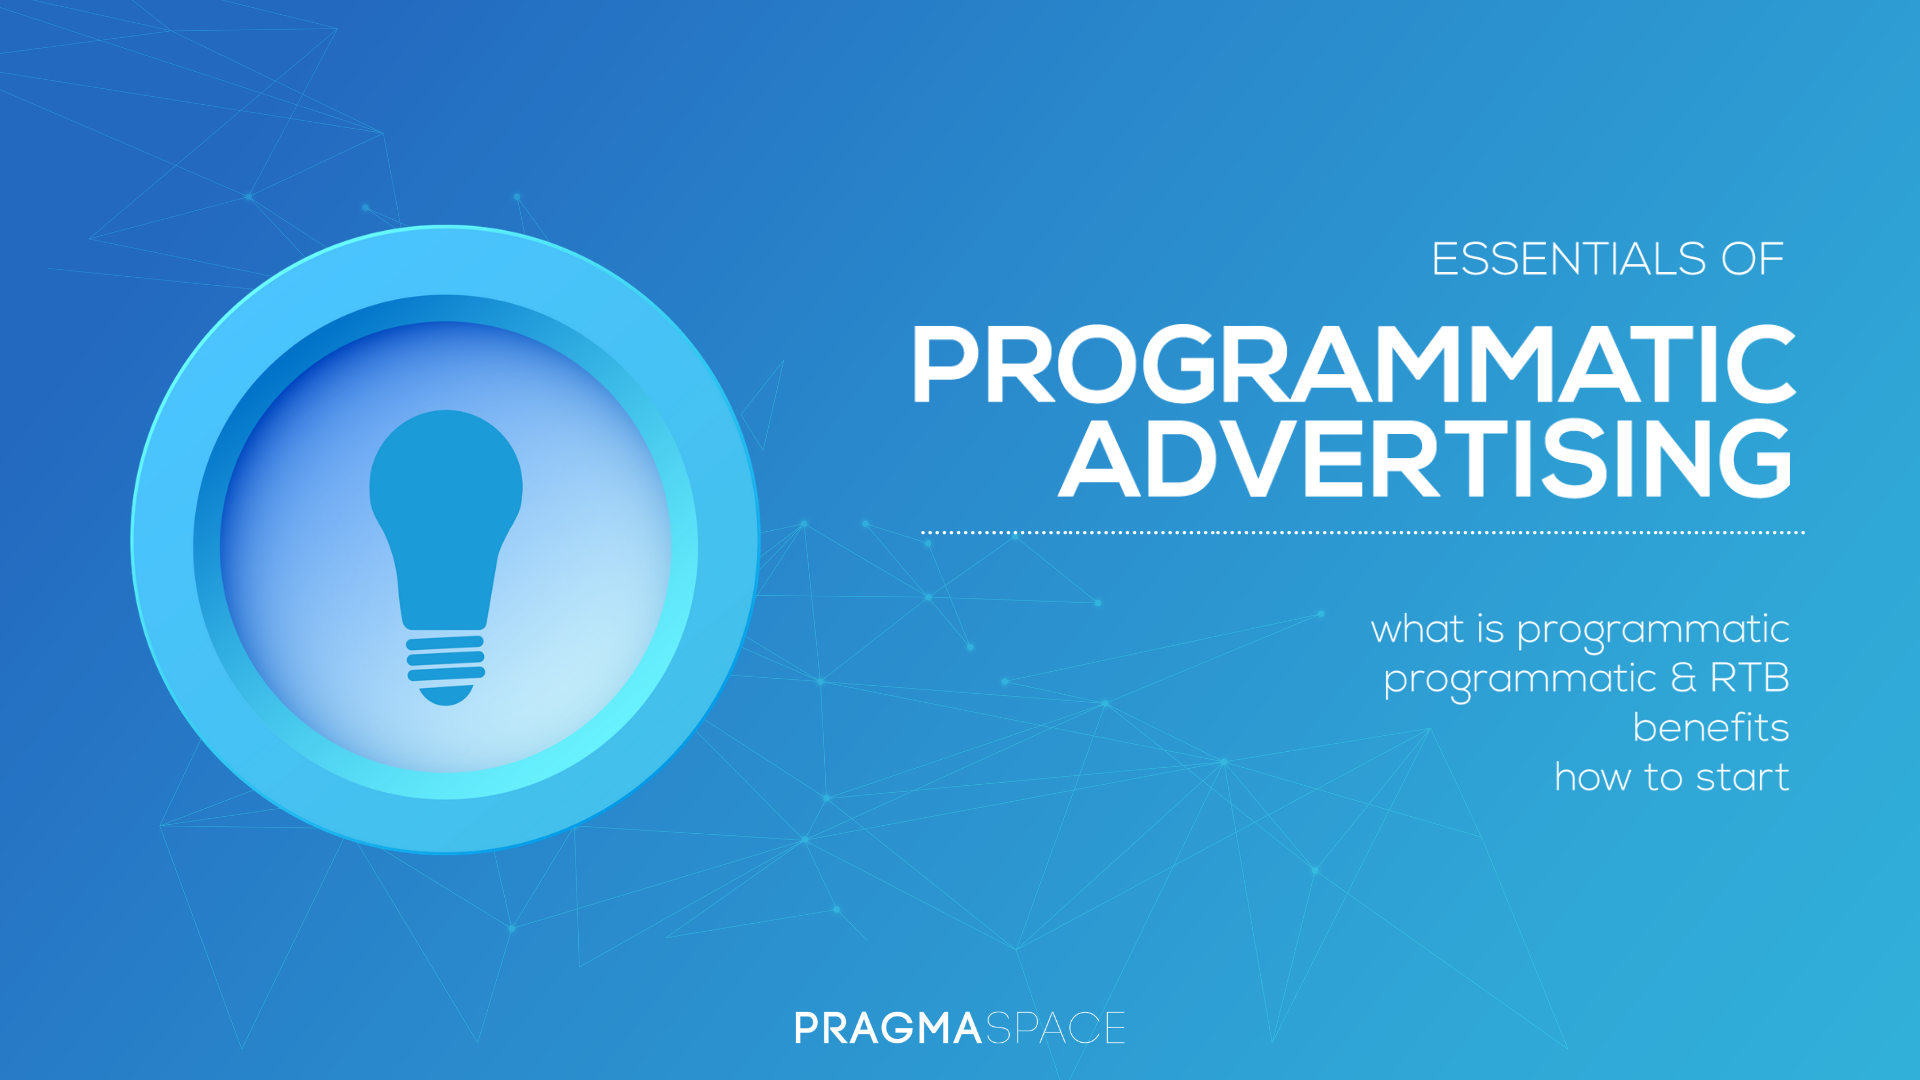 What is programmatic advertising? 4 reasons why your business needs programmatic